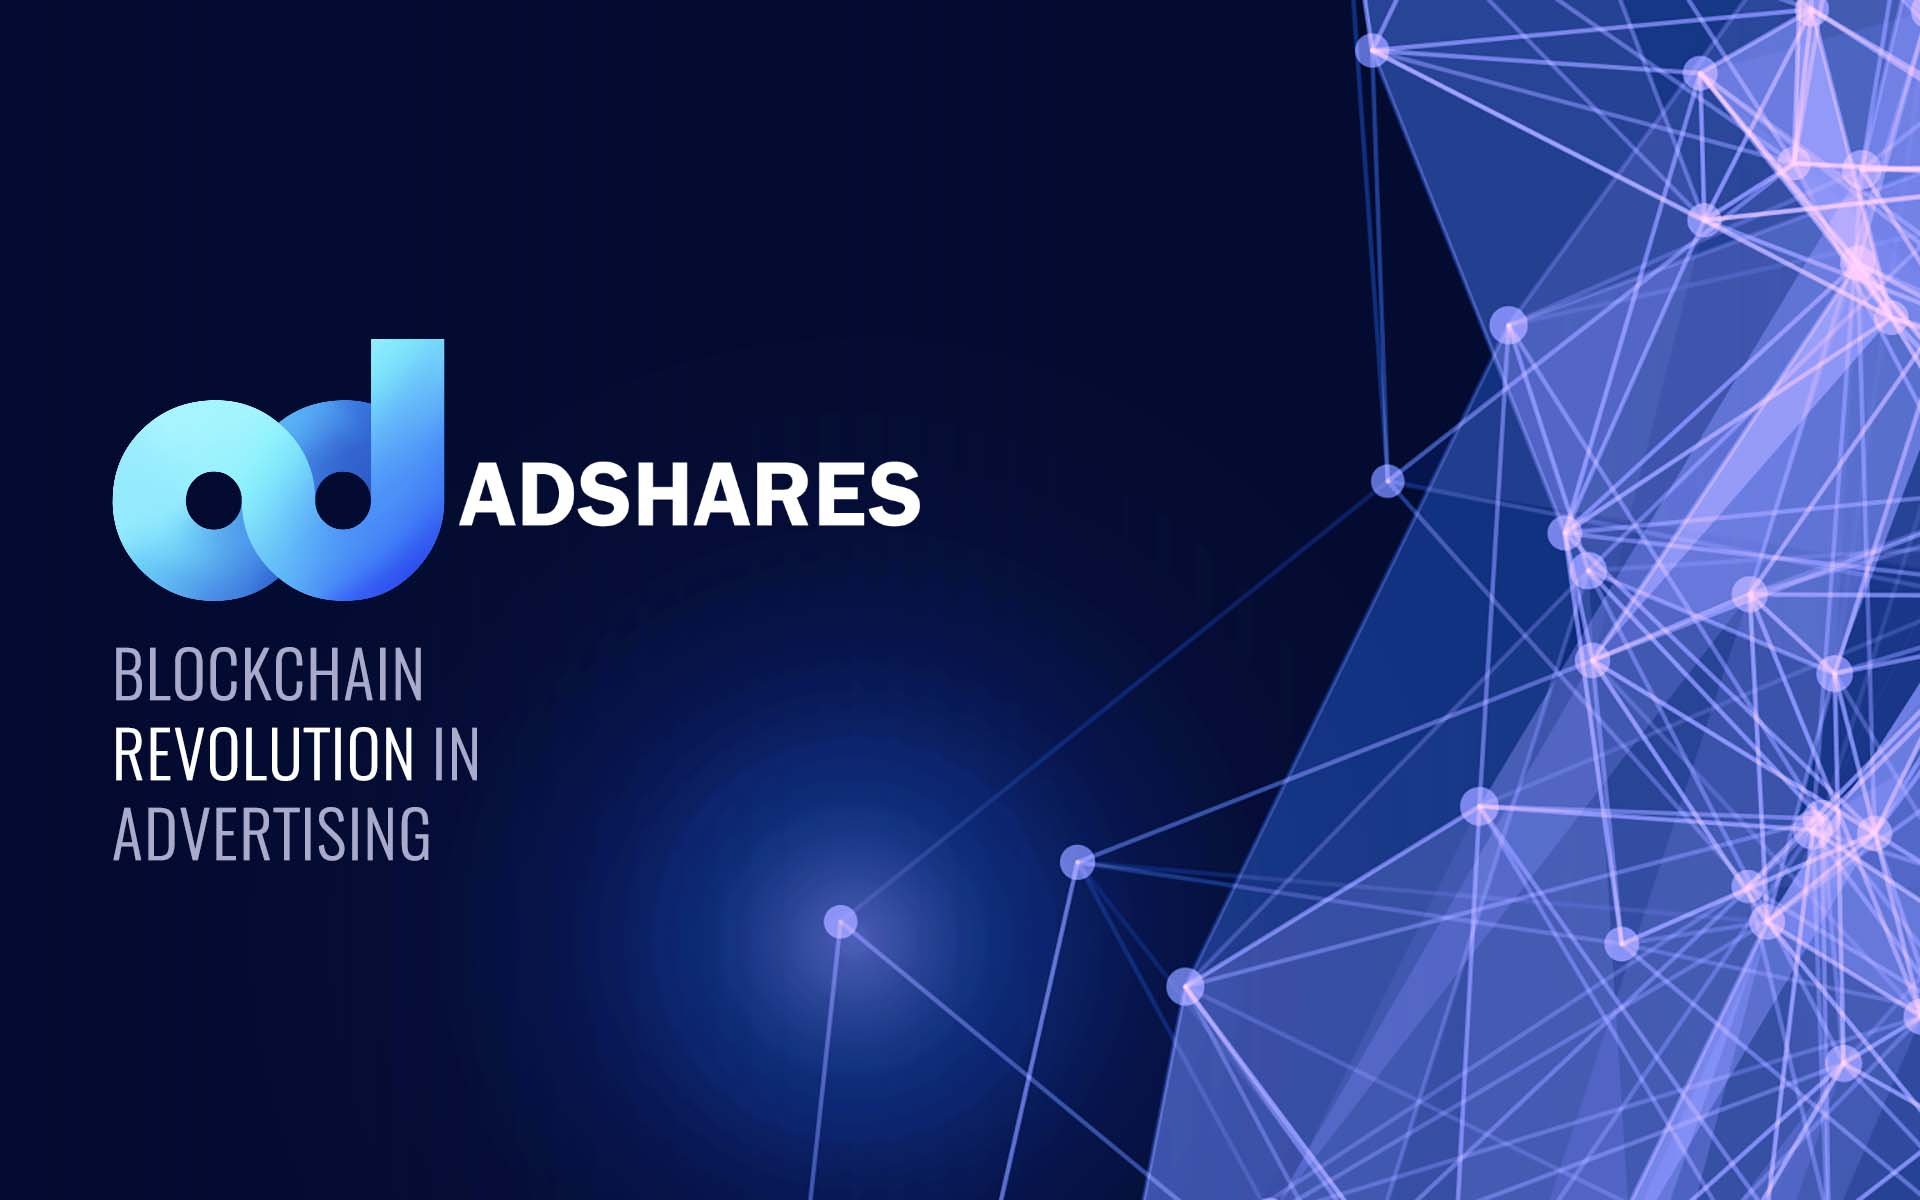 Adshares Token Crowdsale Is Nearly Over! The Revolution of Digital Advertising Shows Potential.